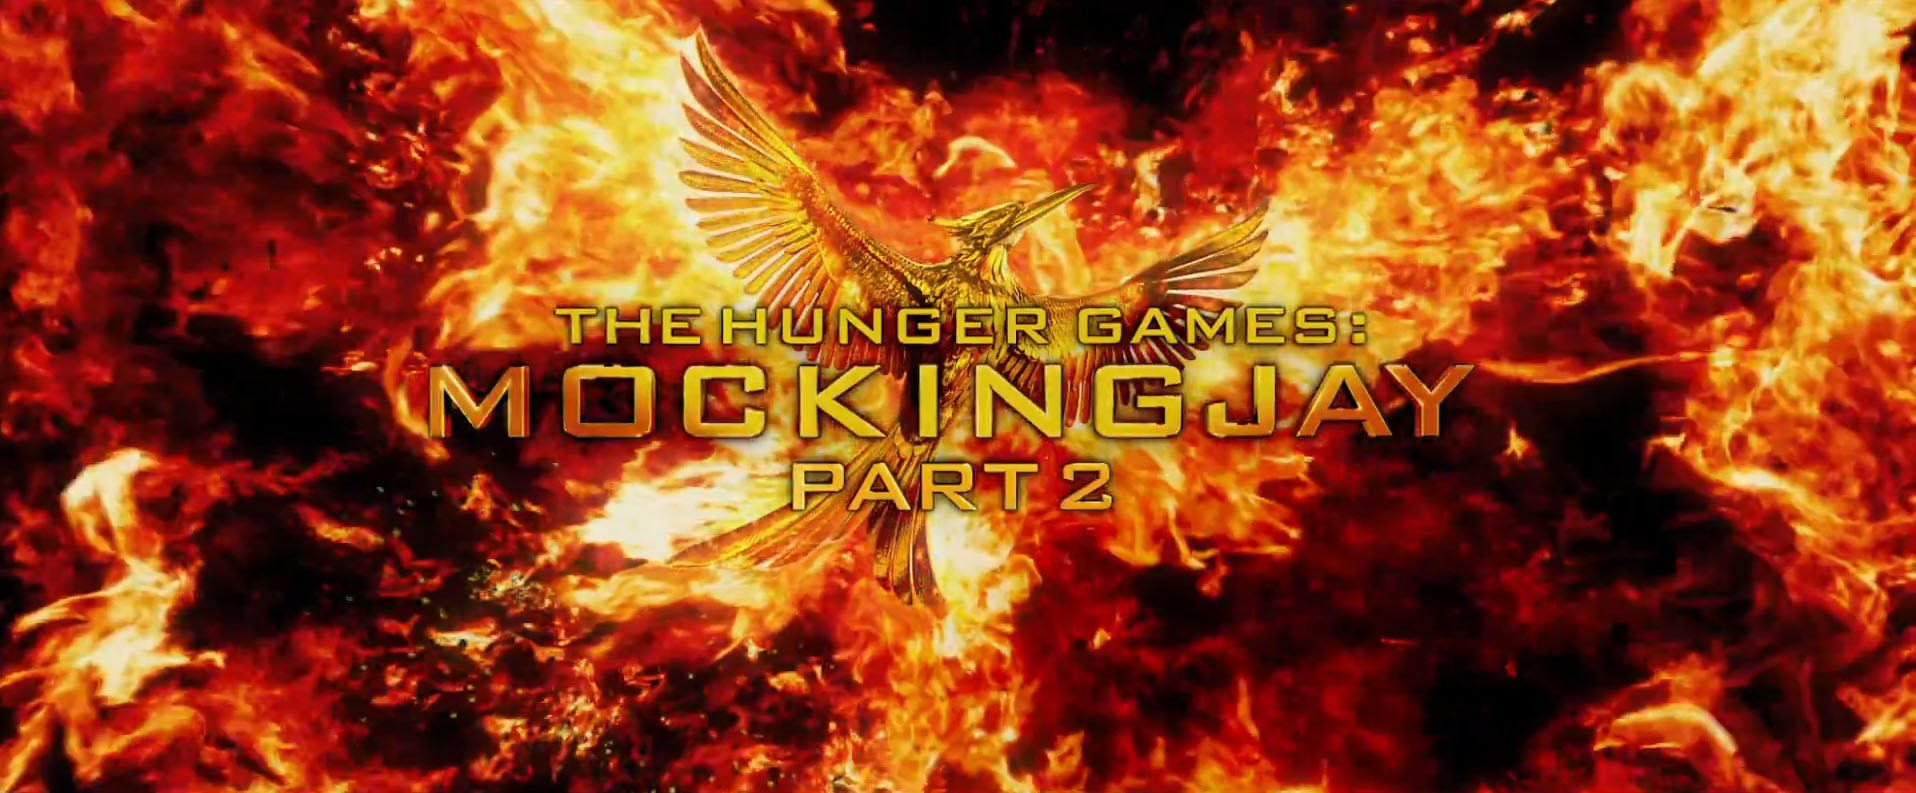 The Hunger Games Mockingjay Part 2 Logo - The Hunger Games: Mockingjay Part 2 Review